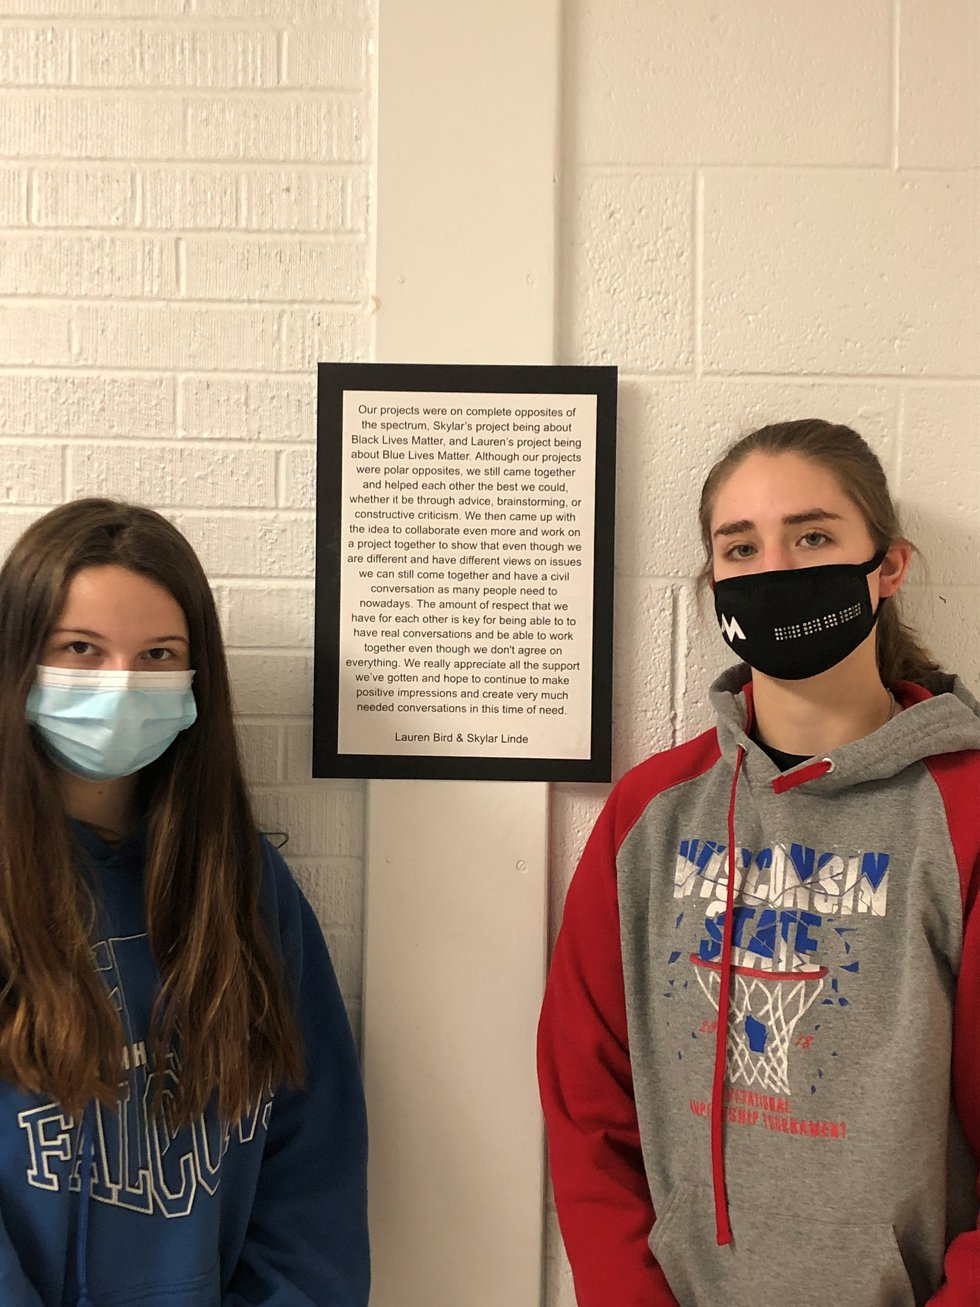 Lauren Bird (right) and Skylar Linde (left) pose in front of the explanation they wrote about...